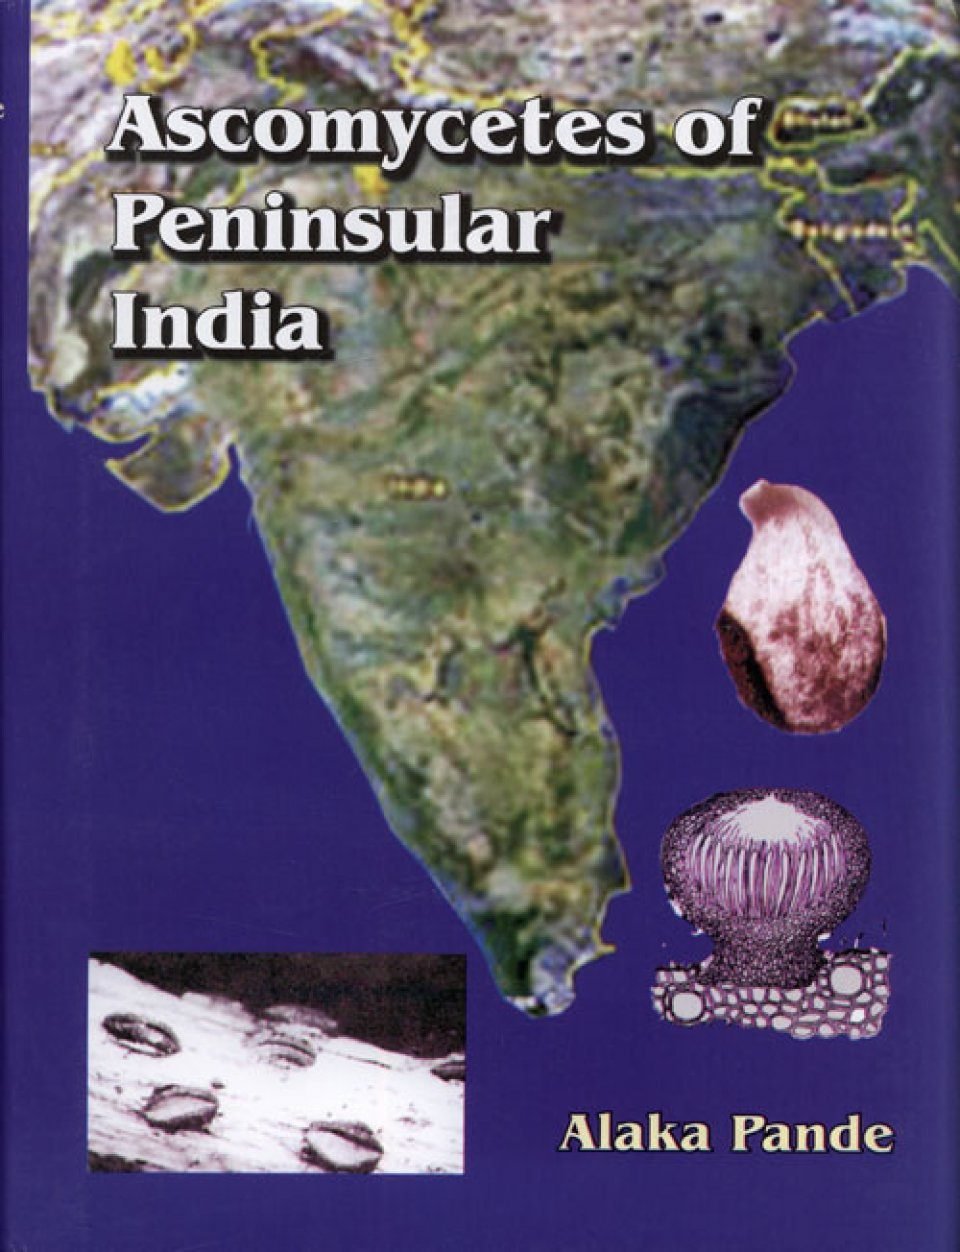 Ascomycetes of Peninsular India